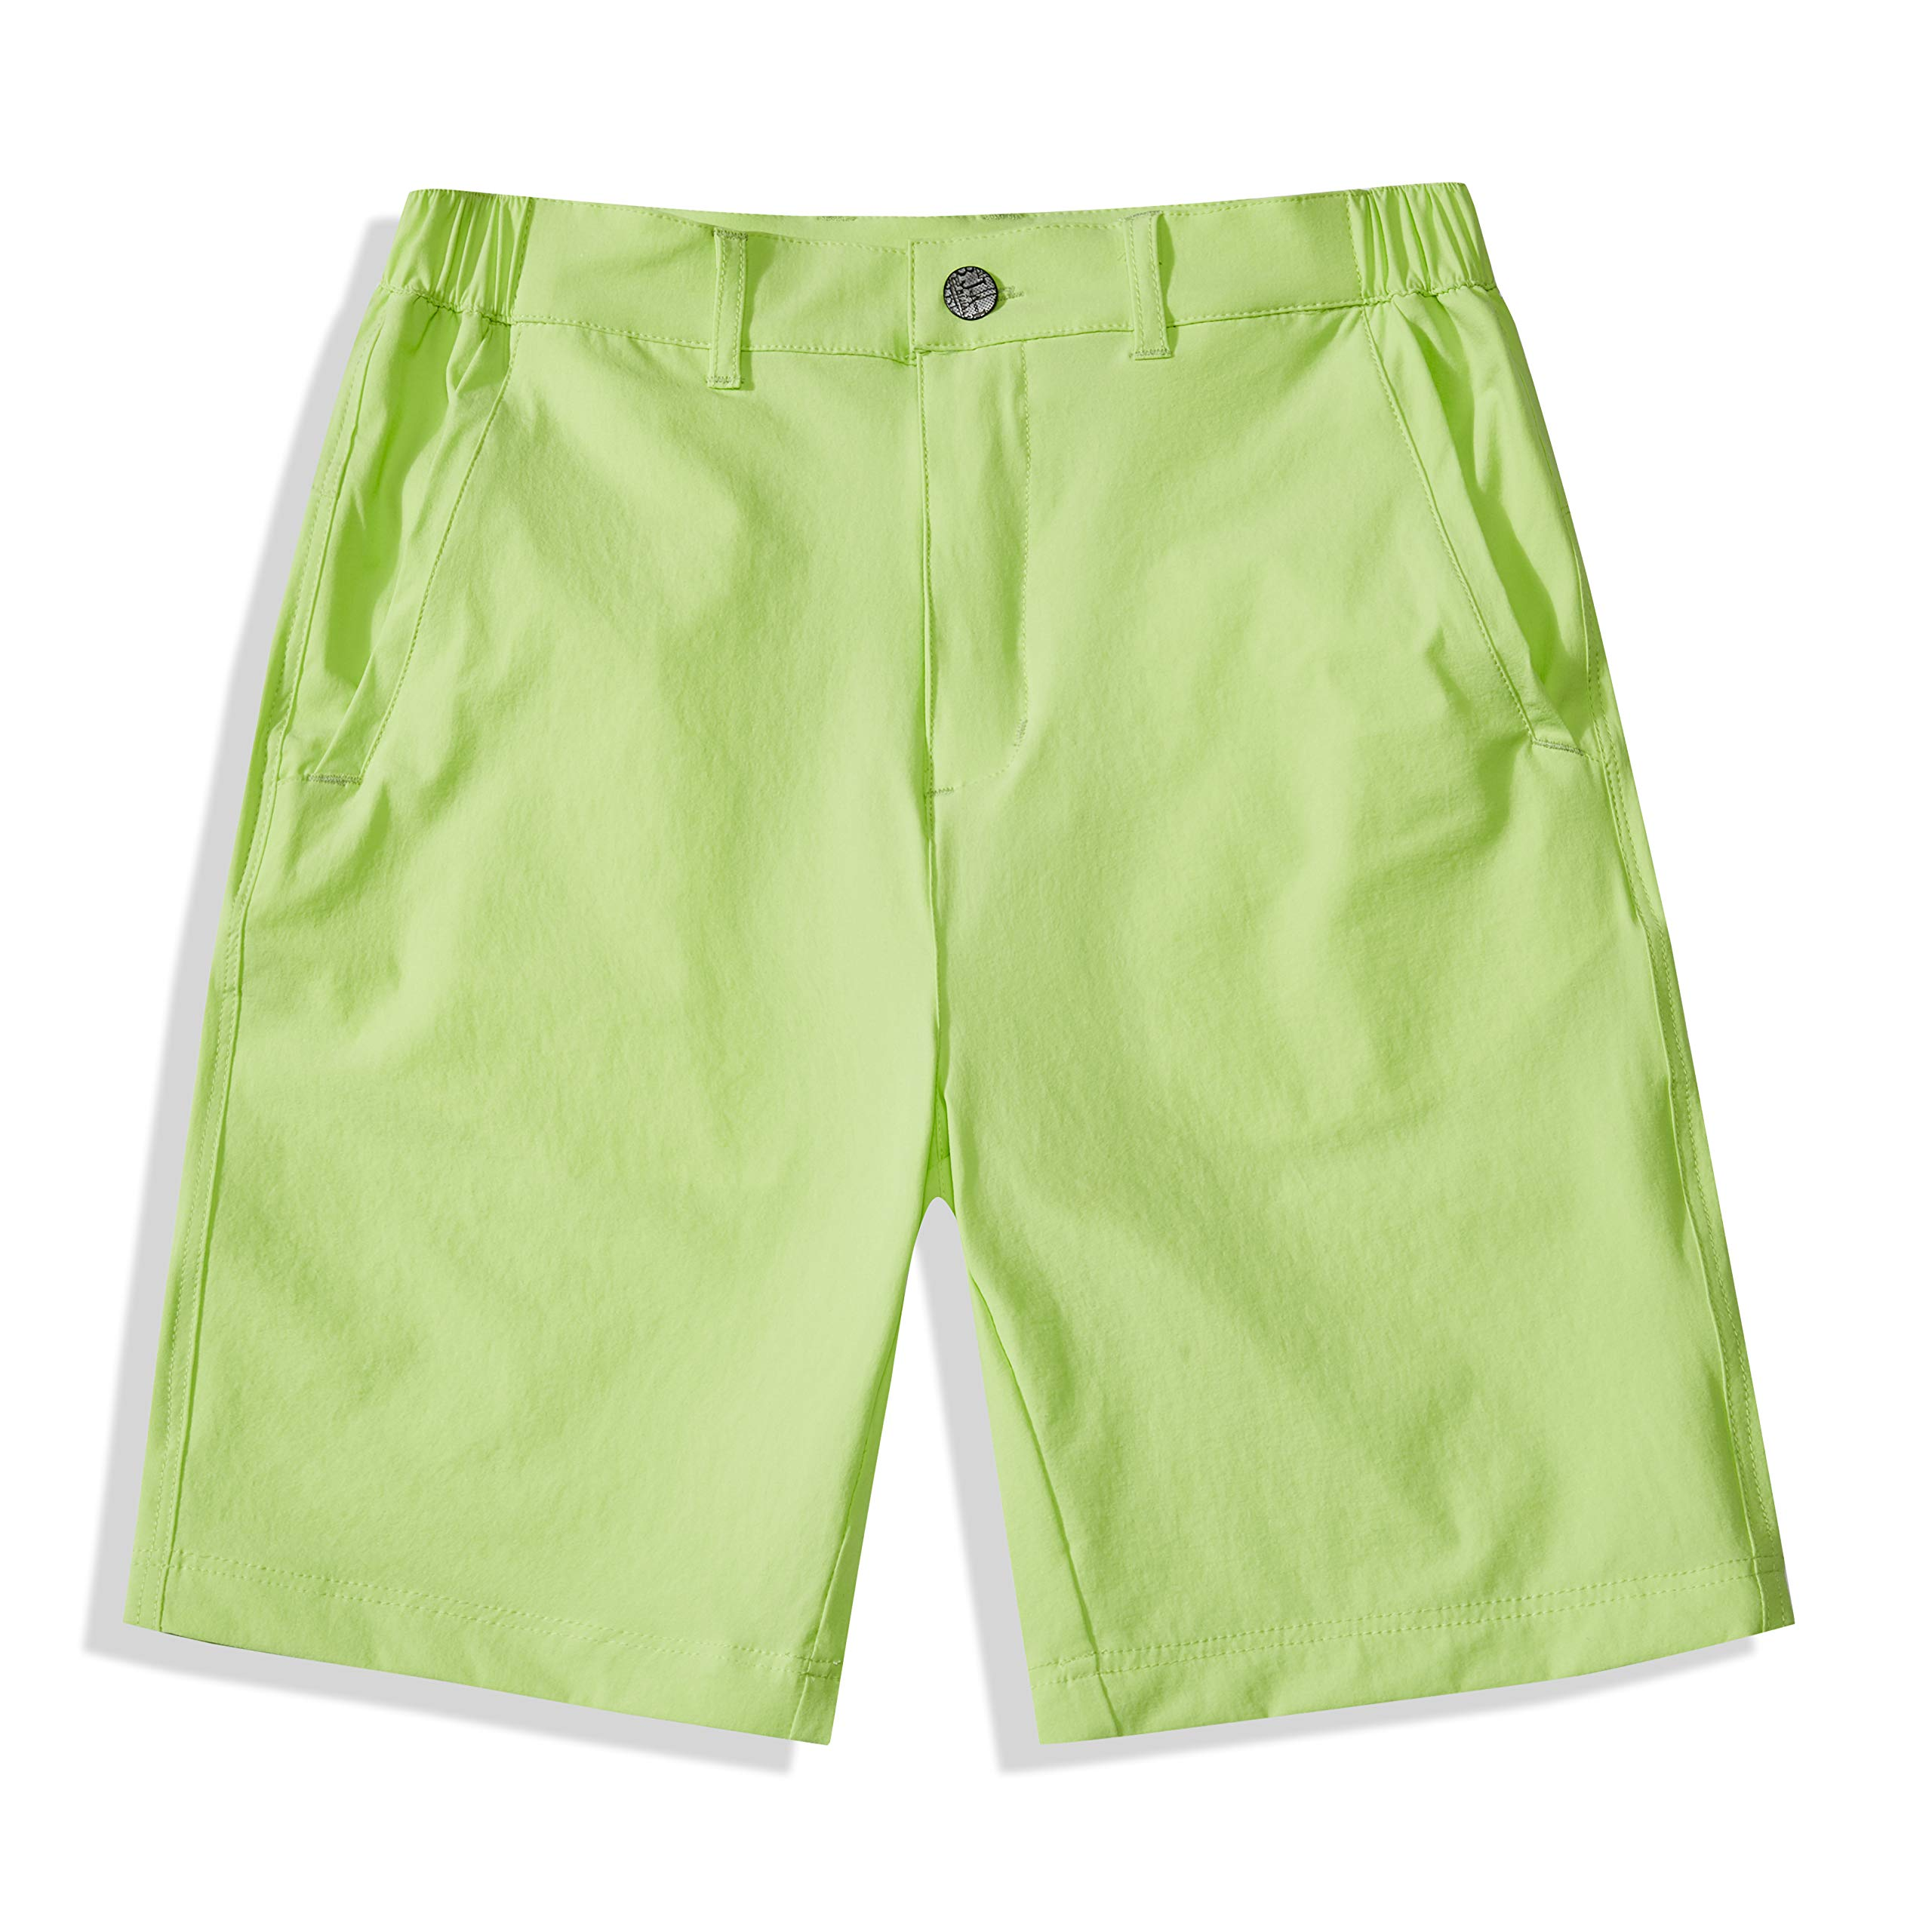 BASADINA Boys Shorts Quick Dry Outdoor Casual Shorts with Moisture Wicking Solid Green by BASADINA